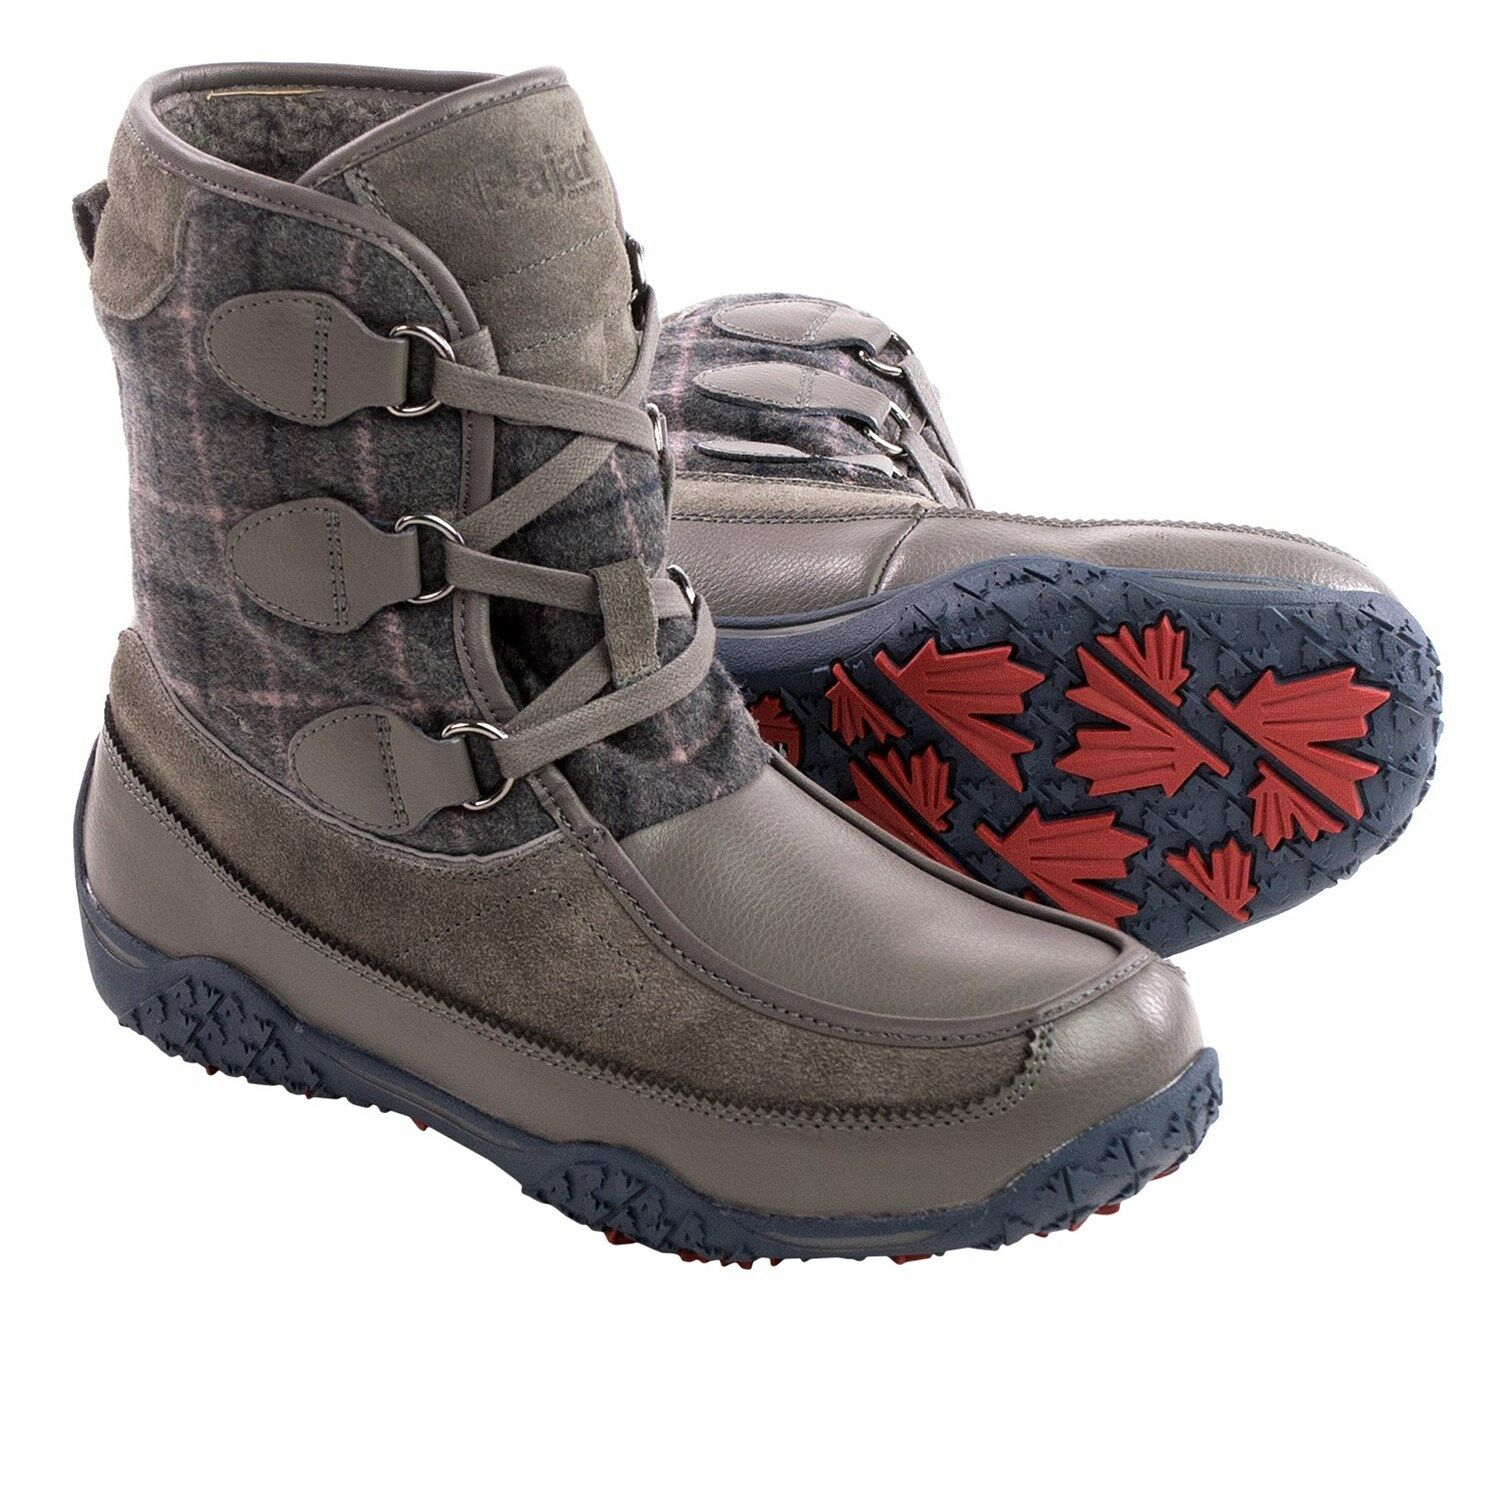 New Pajar Piper Snow Boots Waterproof, Insulated Dark Grey MSRP